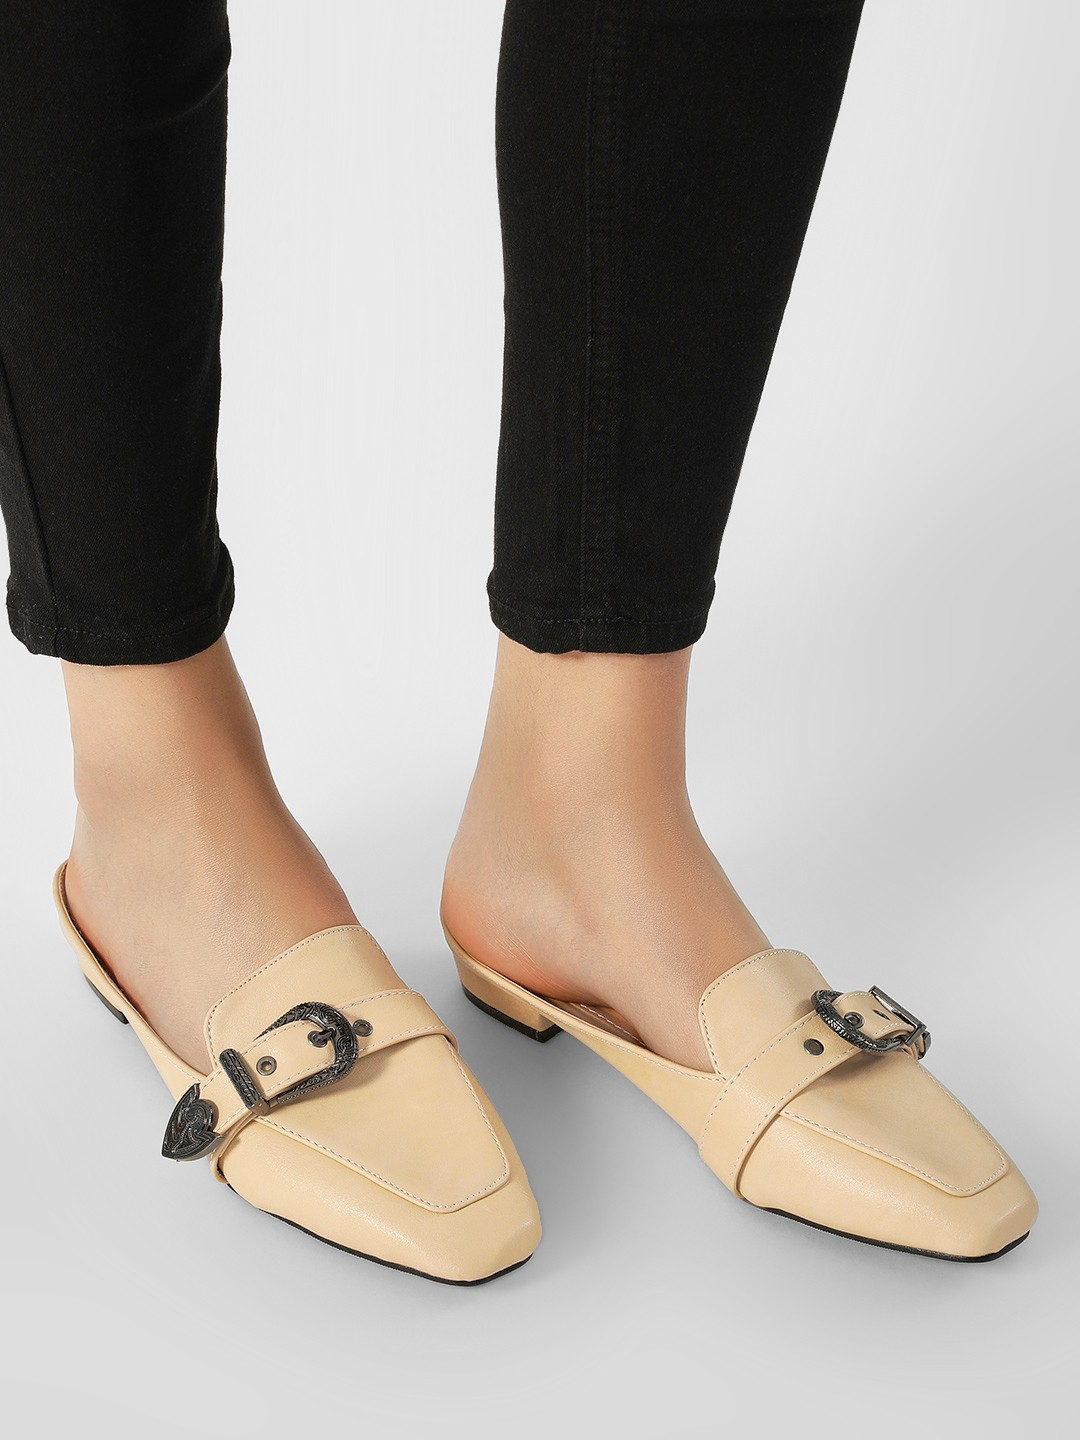 My Foot Couture Beige Buckle Detail Loafer Mule 1